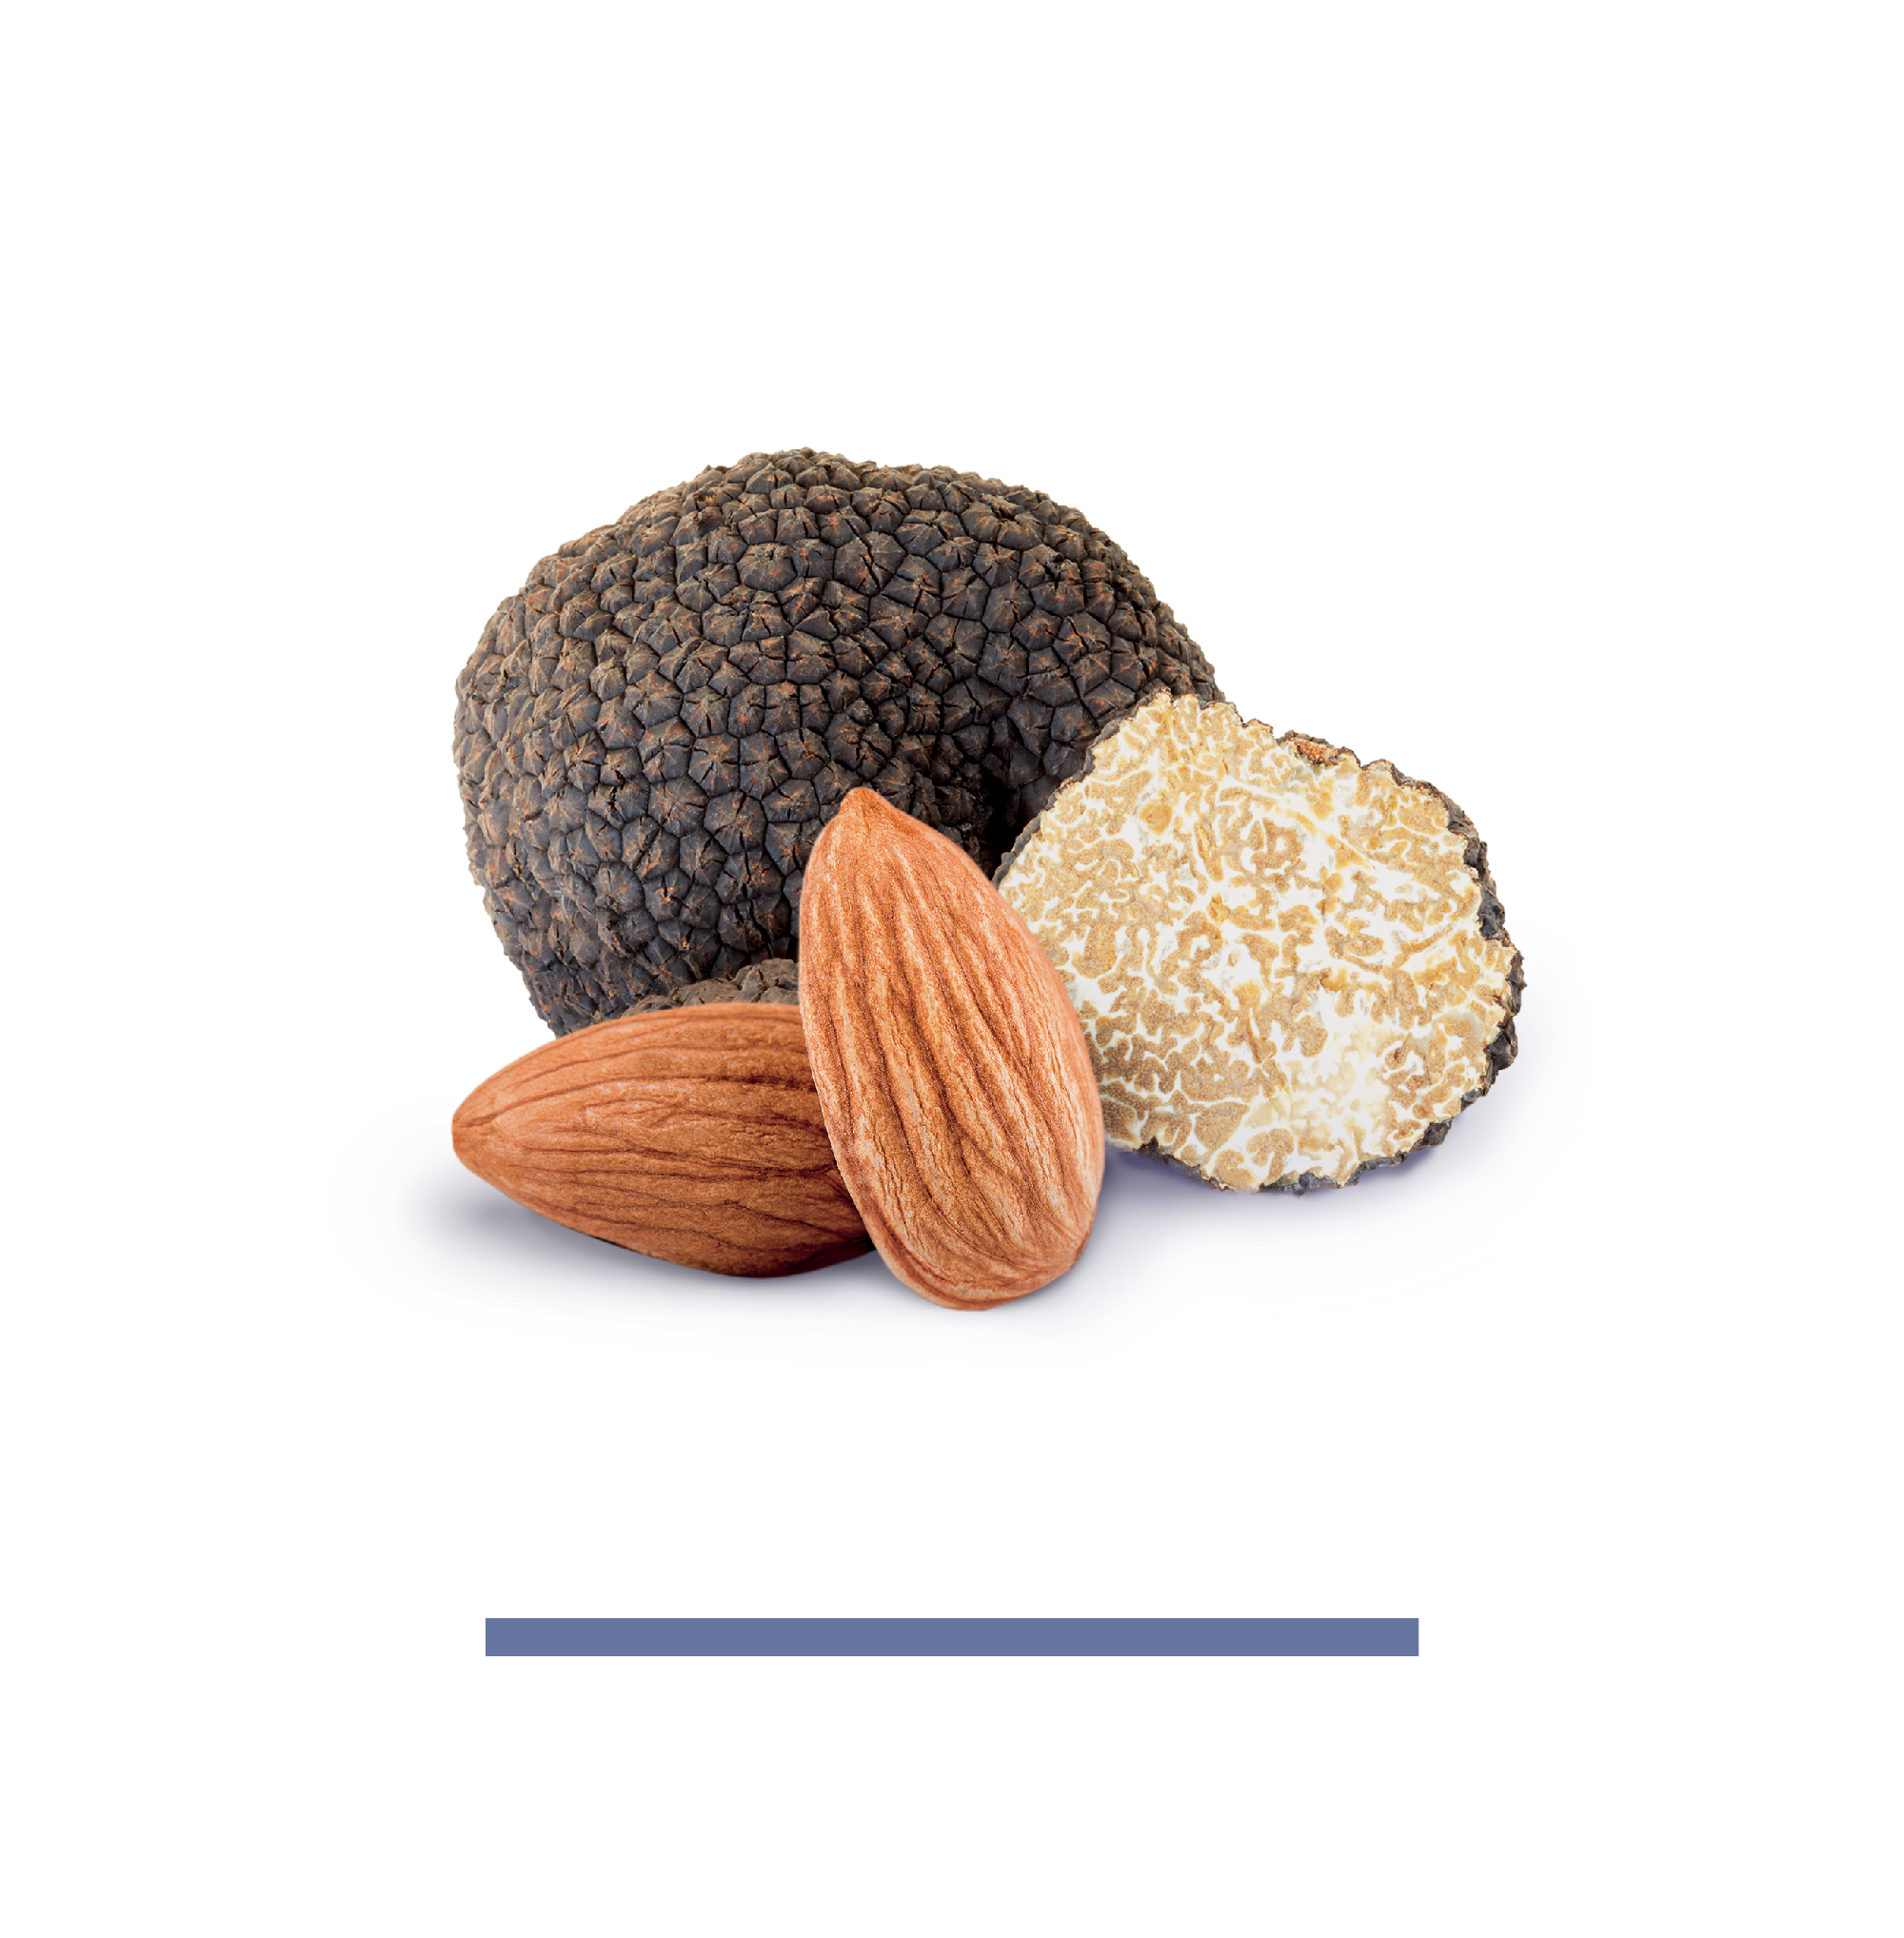 Black Truffle - ALMONDS, SEA SALT, BLACK TRUFFLENot some synthetically enhanced flavor or oil cooked up in a lab. We use real Italian Winter Black Truffles and you can tasted the difference.